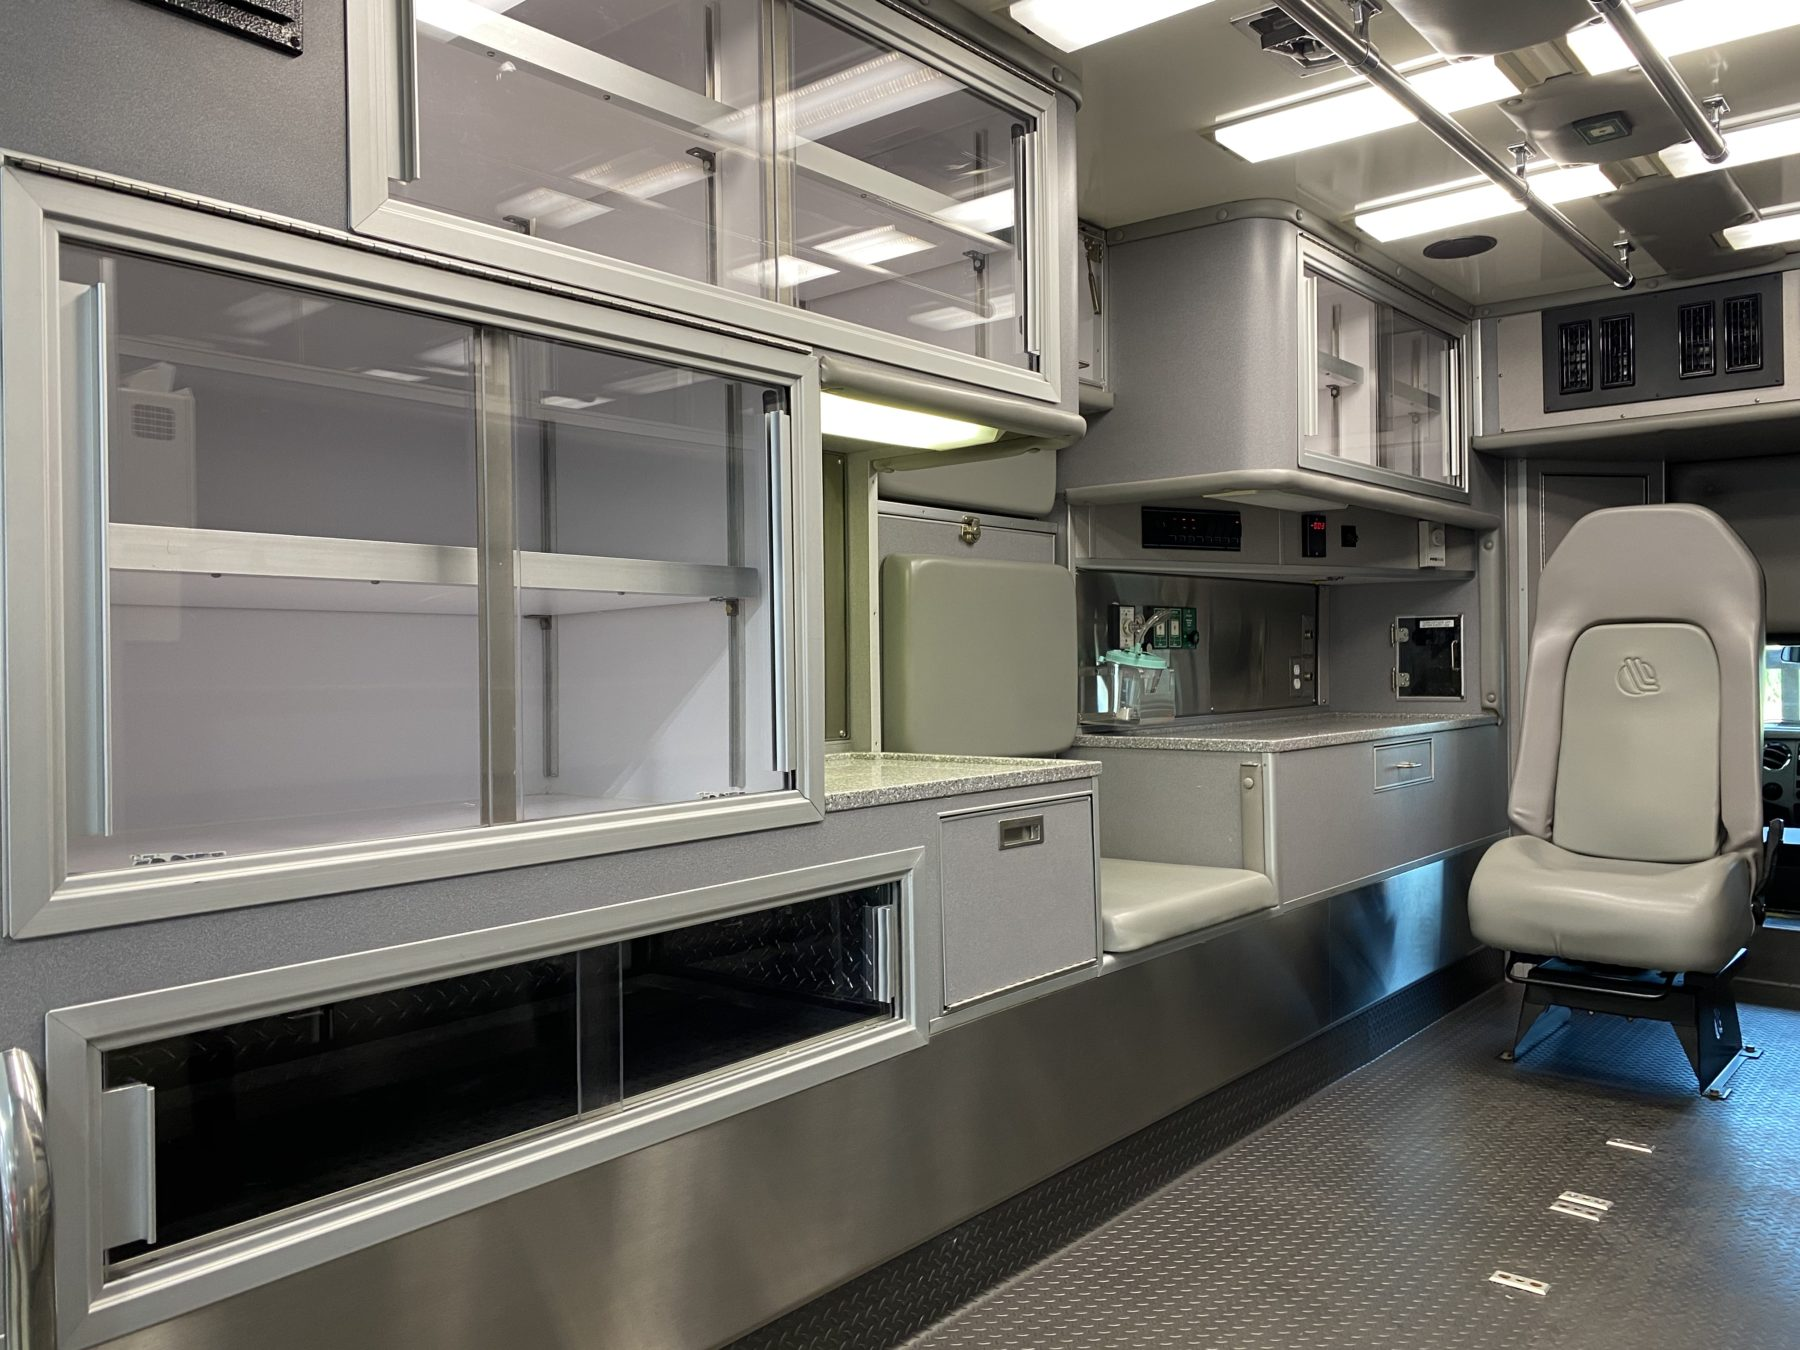 2015 Ford F450 4x4 Heavy Duty Ambulance For Sale – Picture 4